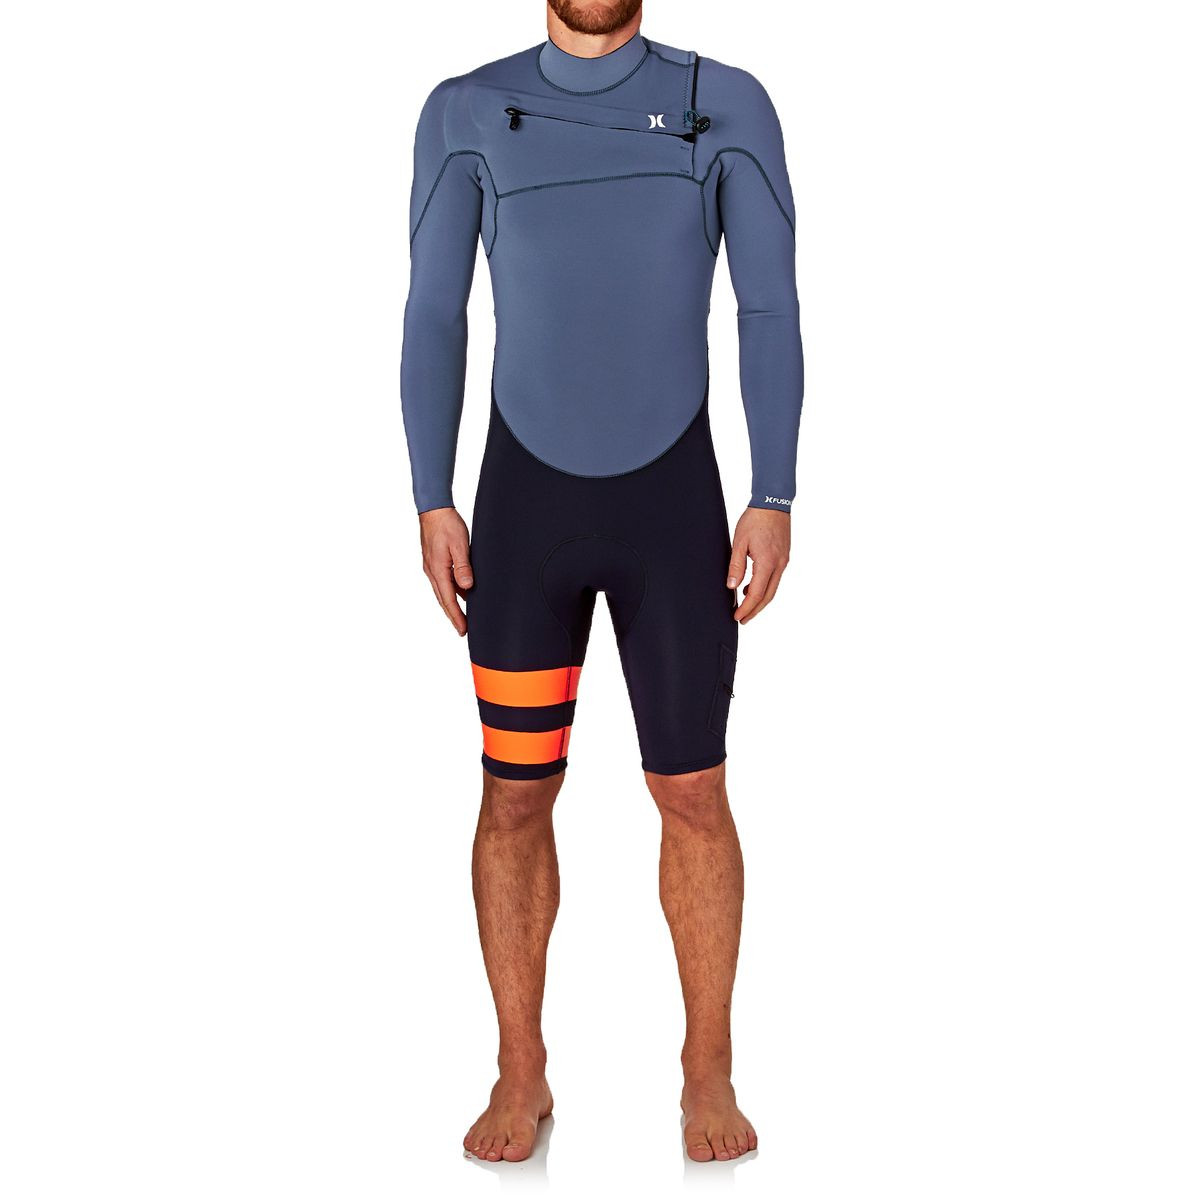 Hurley Fusion 2mm 2017 Chest Zip Long Sleeve Shorty Wetsuit - Obsidian